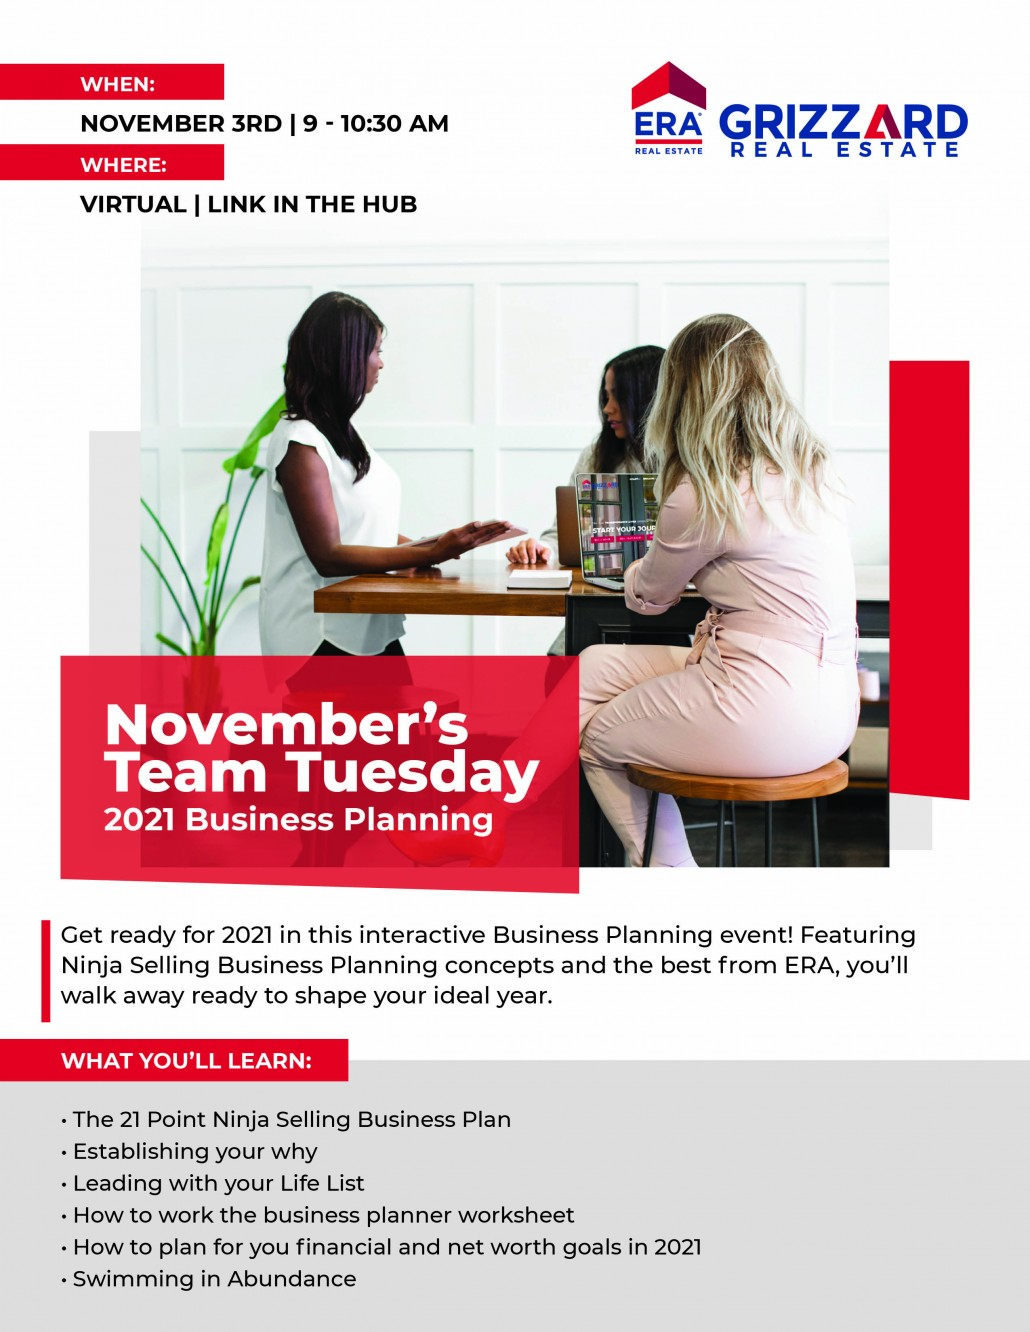 November Team Tuesday: 2021 Business Planning